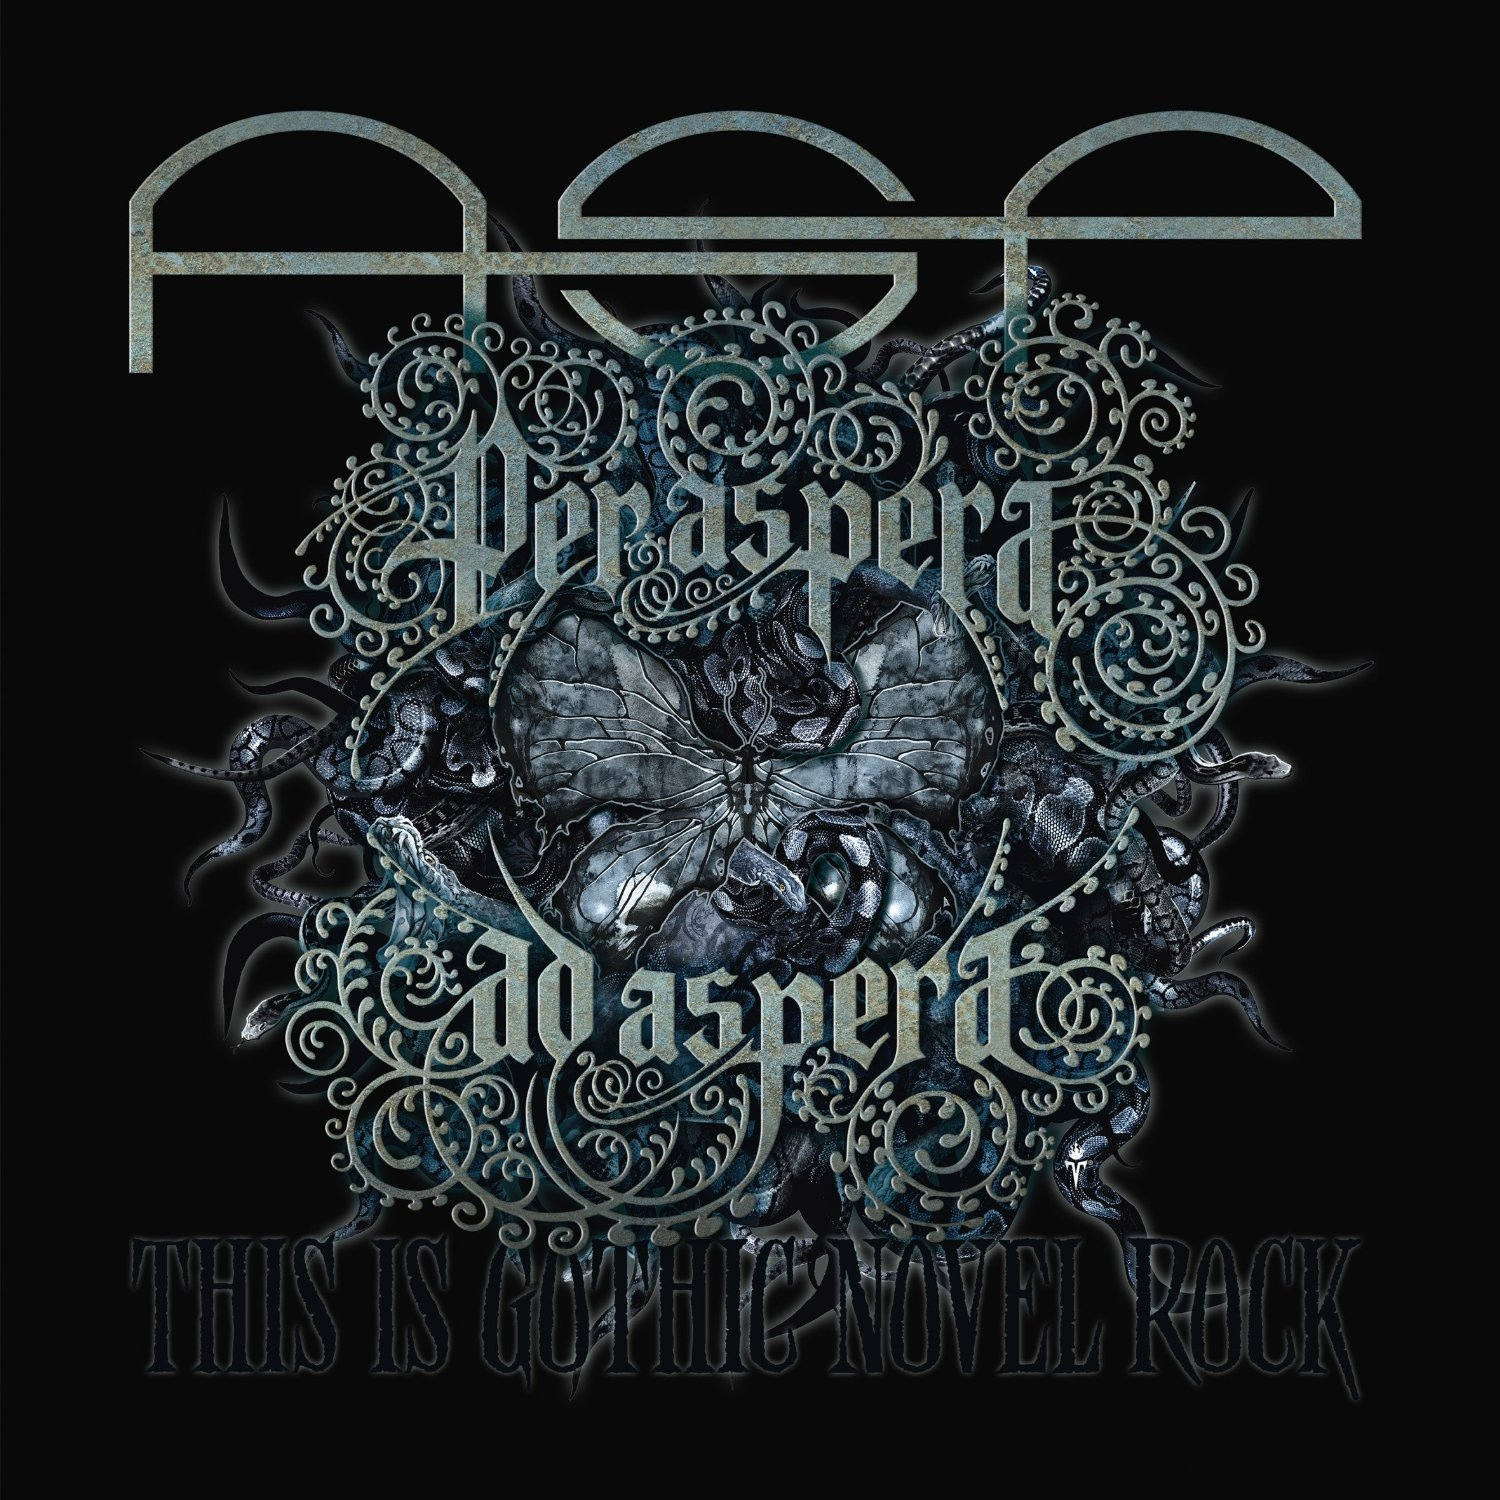 ASP Per Aspera Ad Aspera – This Is Gothic Novel Rock 2CD BOX 2014